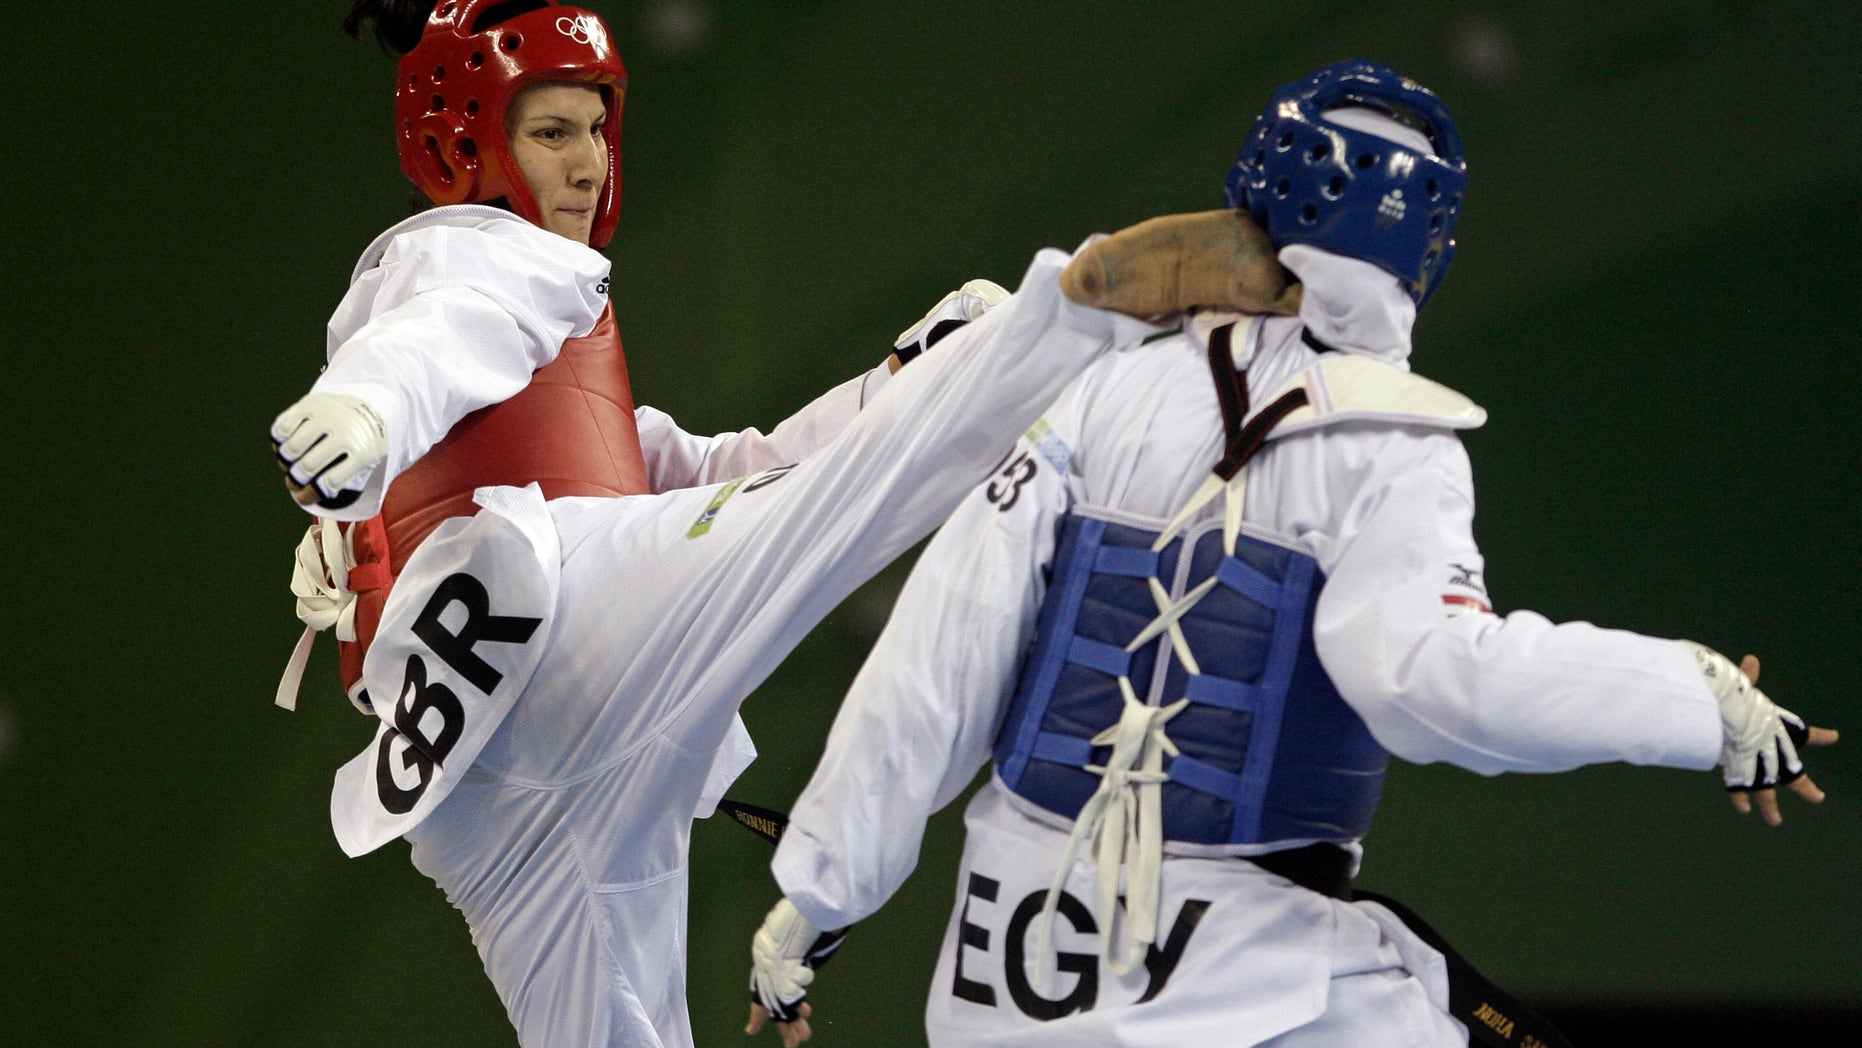 Aug. 23, 2008: Britain's Sarah Stevenson, left, fights with Egypt's Noha Abd Rabo in a bronze medal match for the women's taekwondo +67 kilogram class at the Beijing 2008 Olympics in Beijing.